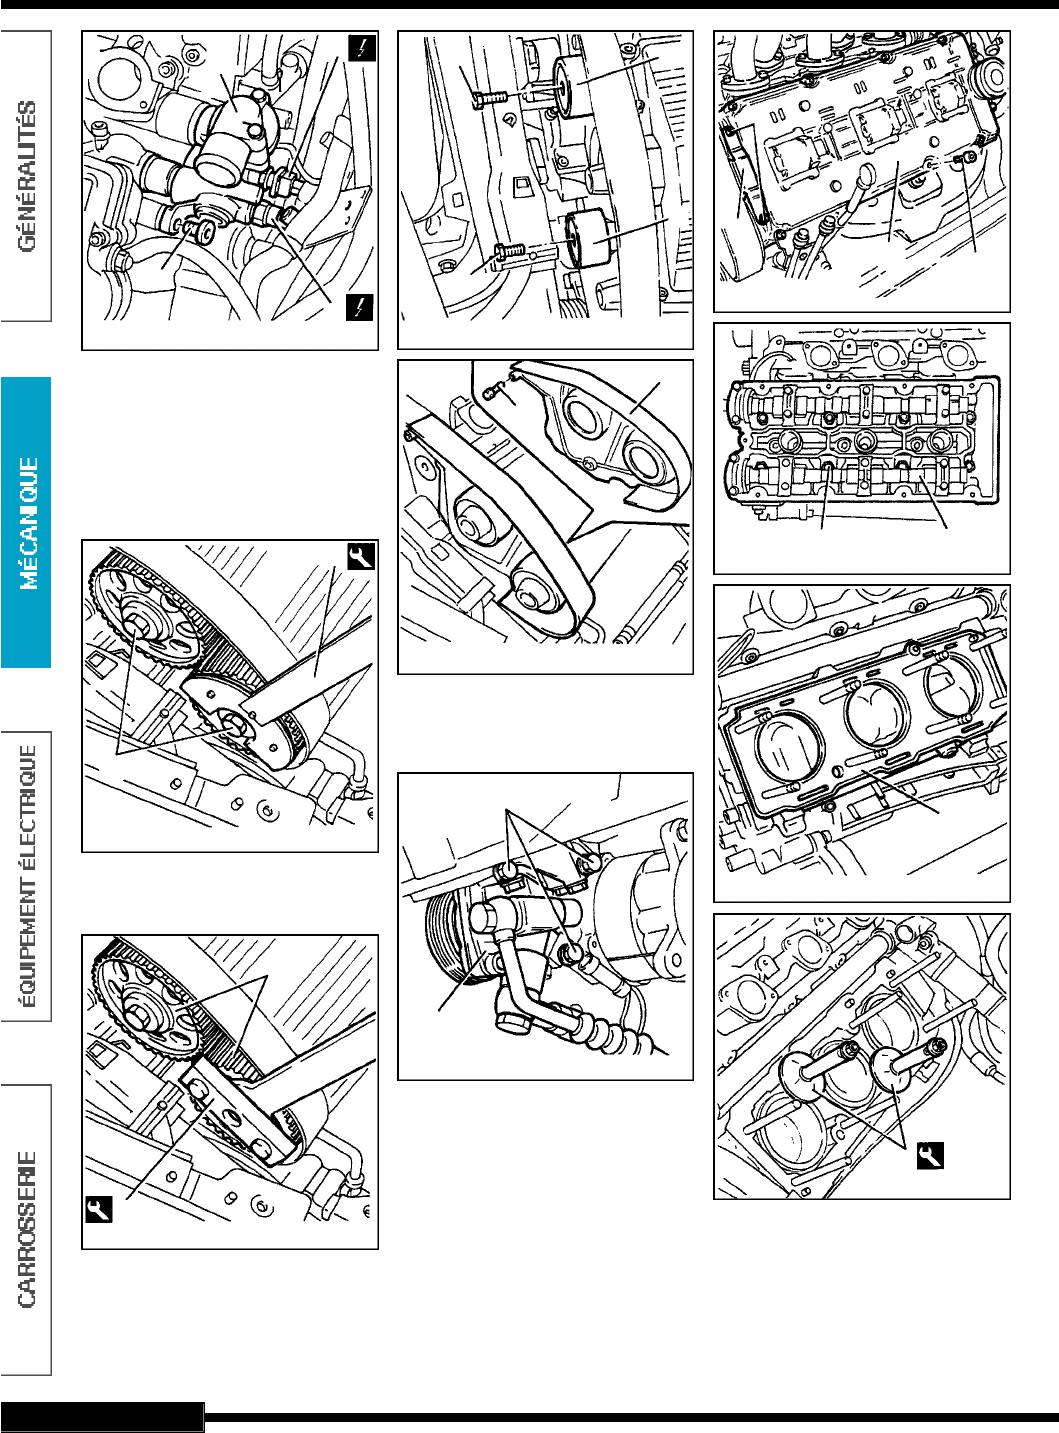 Alfa Romeo 156 Workshop Manual French PDF